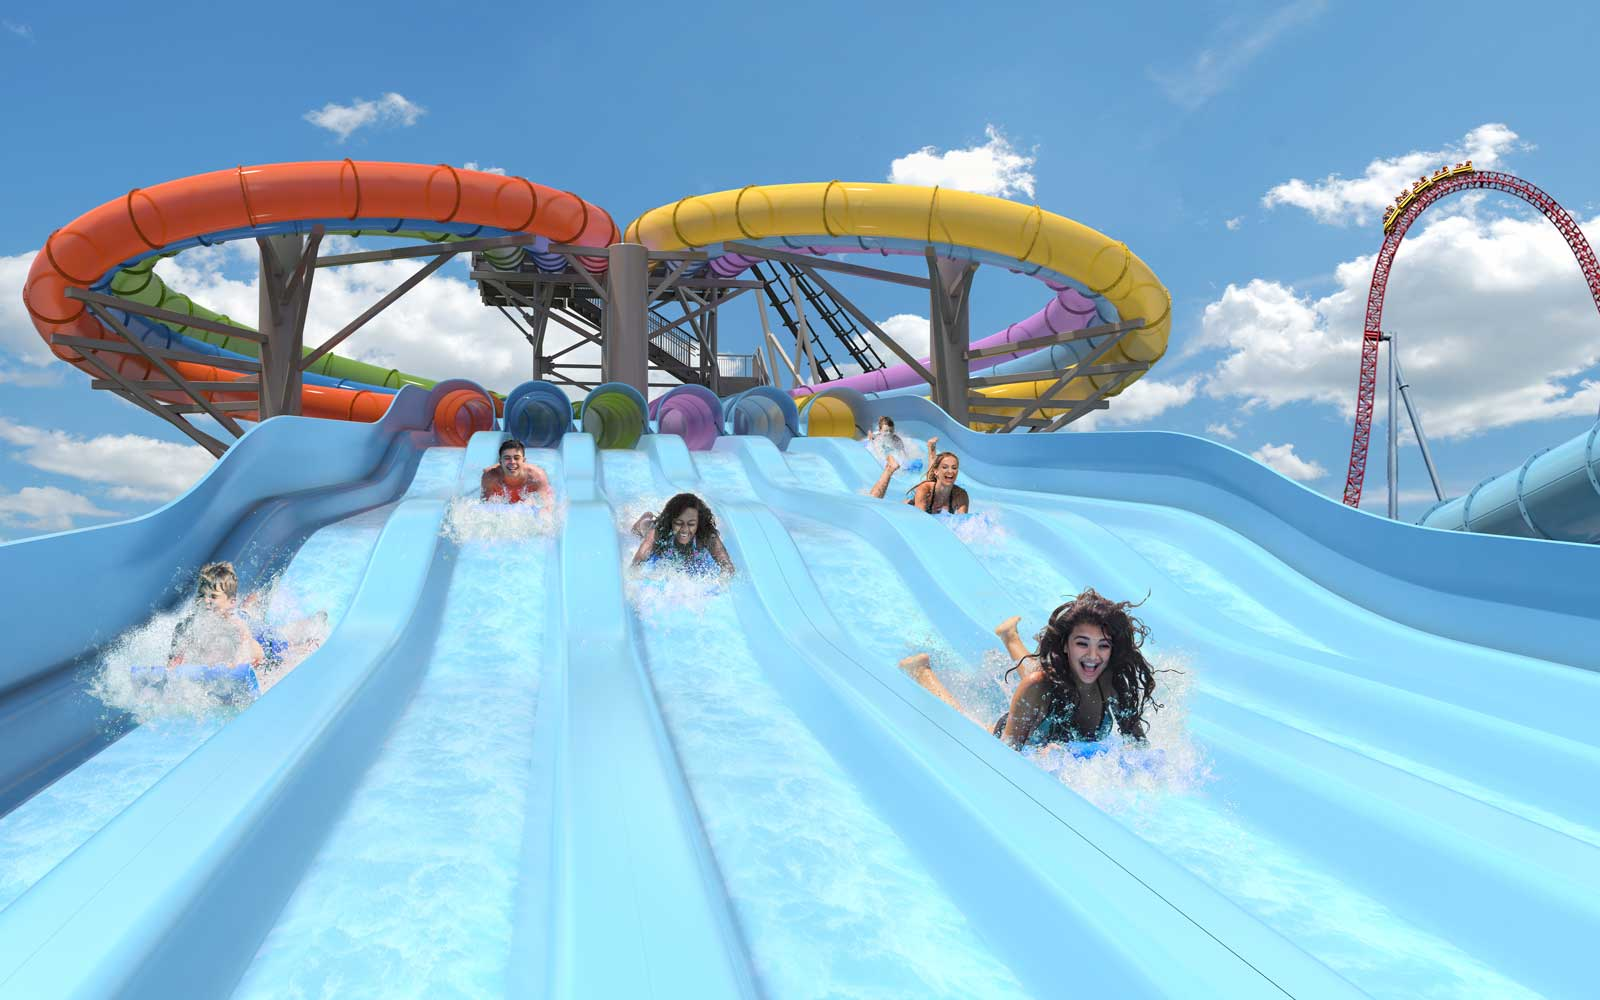 Whitecap Racer slides coming to Hersheypark in 2018